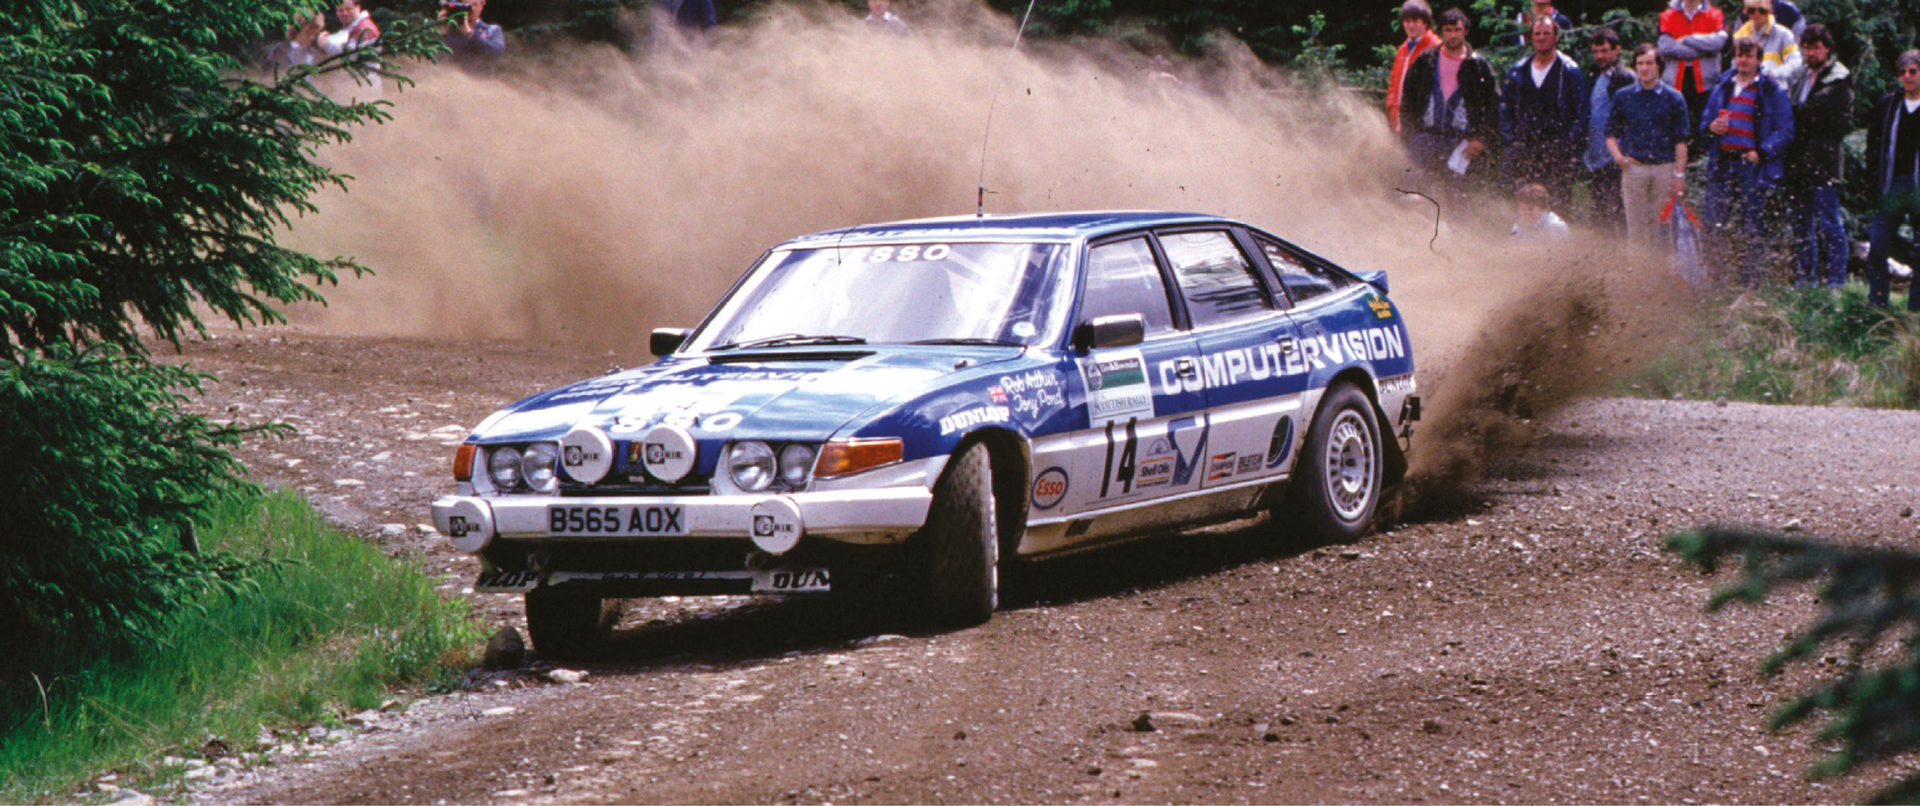 Not just for circuits! Tony Pond won his class on the 1985 Scottish Rally in a factory TWR entry